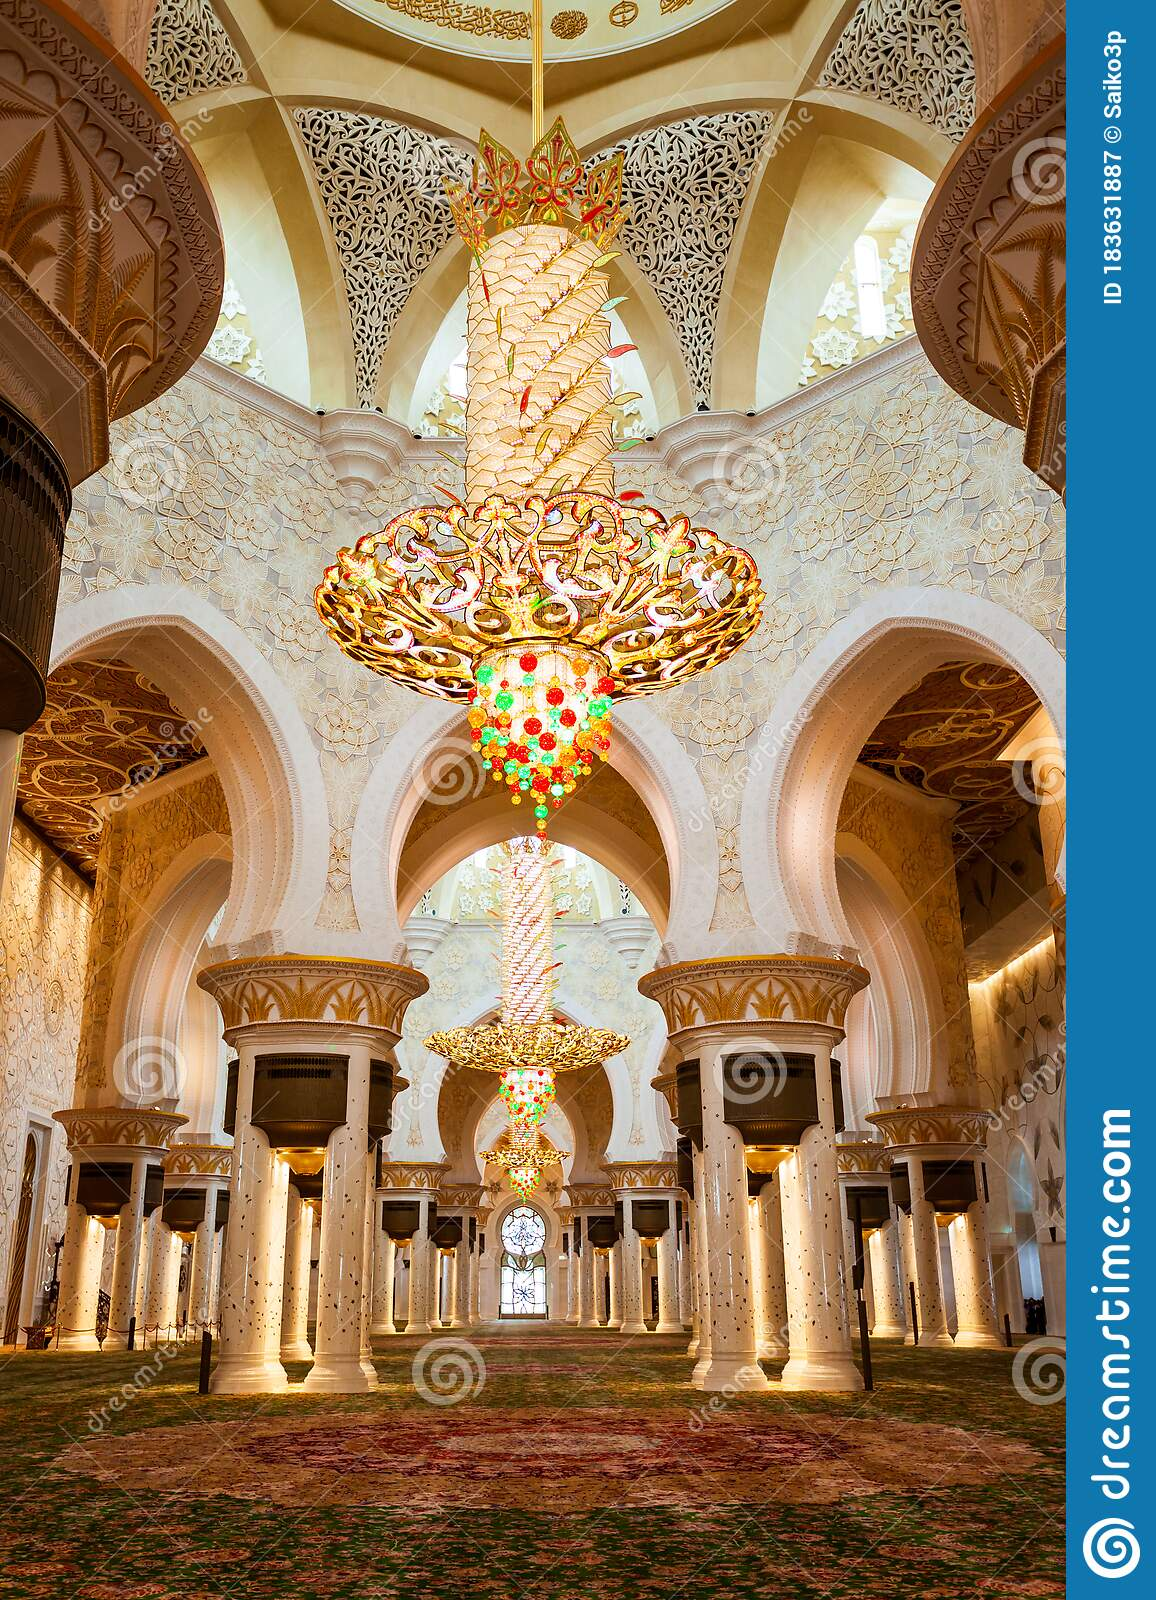 Sheikh Zayed Grand Mosque Interior Editorial Photography Image Of Design Inside 183631887